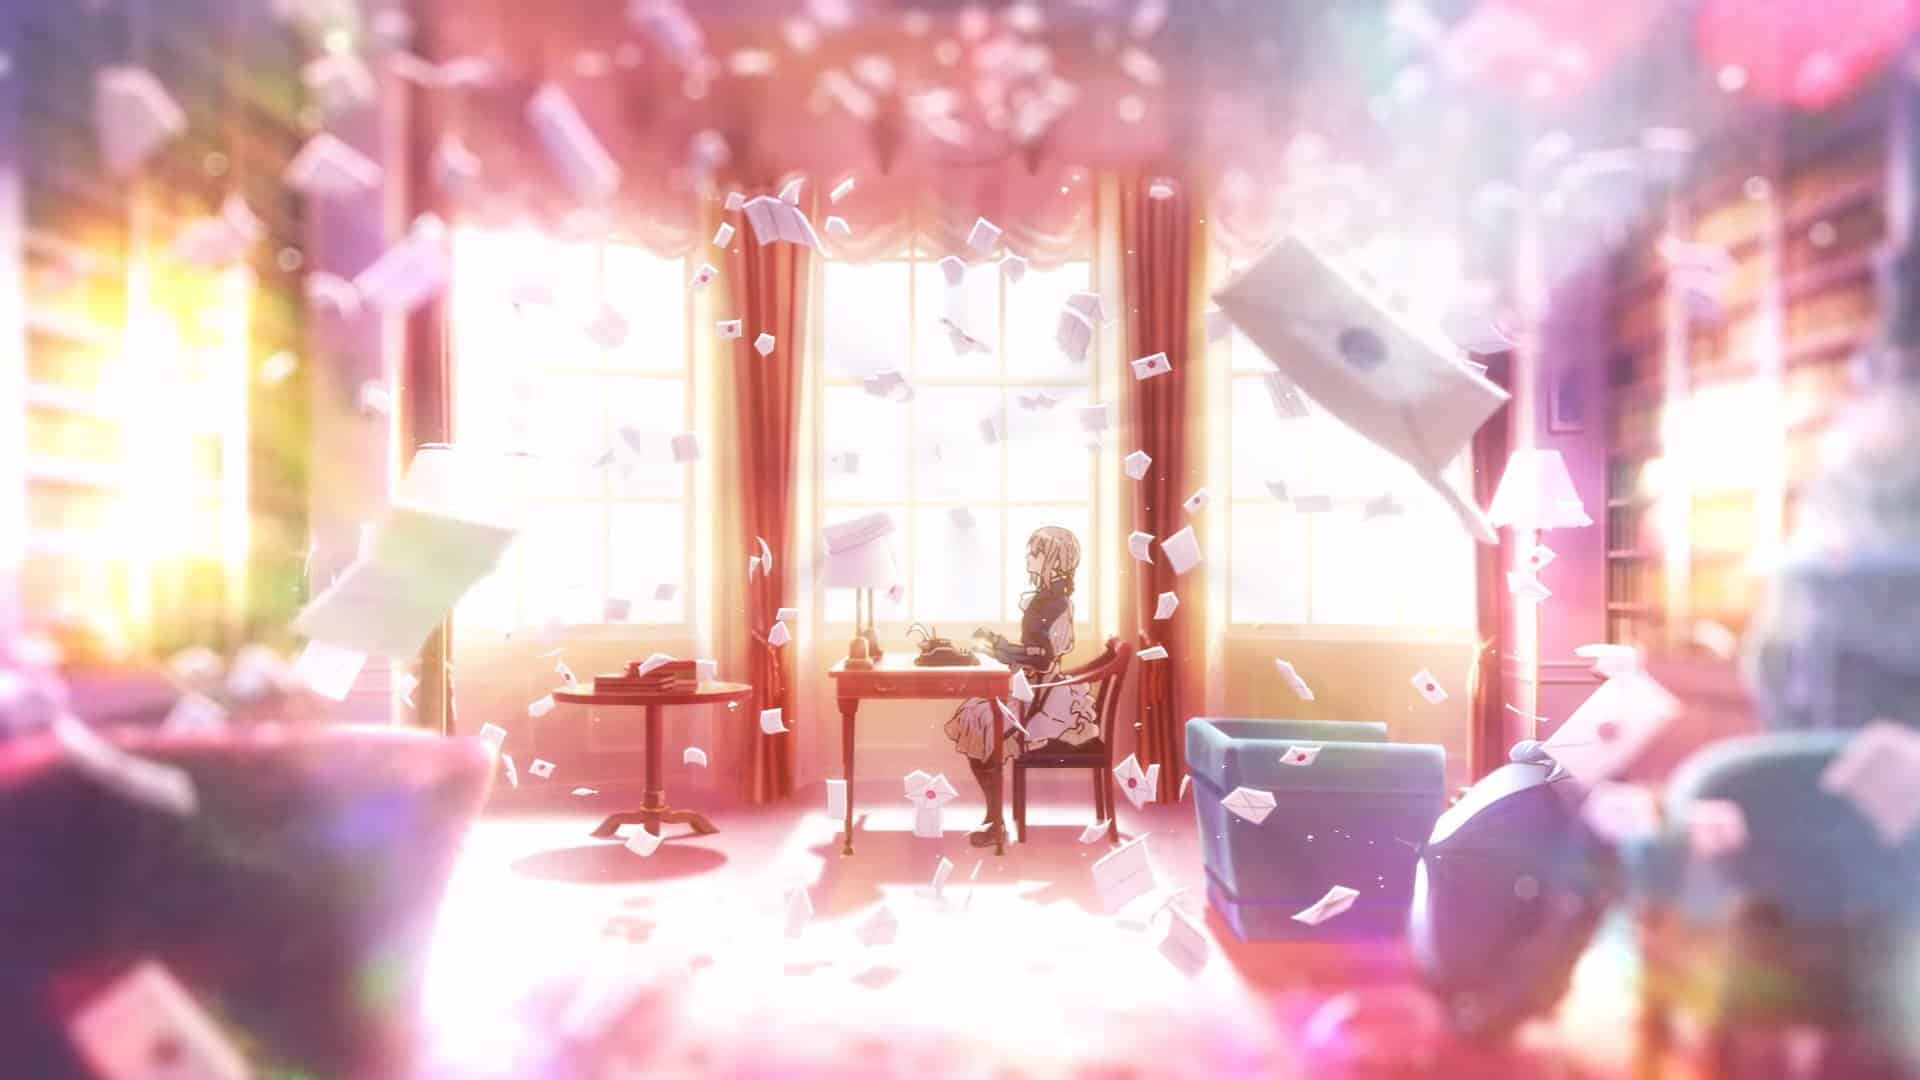 Pretty Quotes Wallpapers Violet Evergarden Episode 1 Review No Spoilers Ultramunch